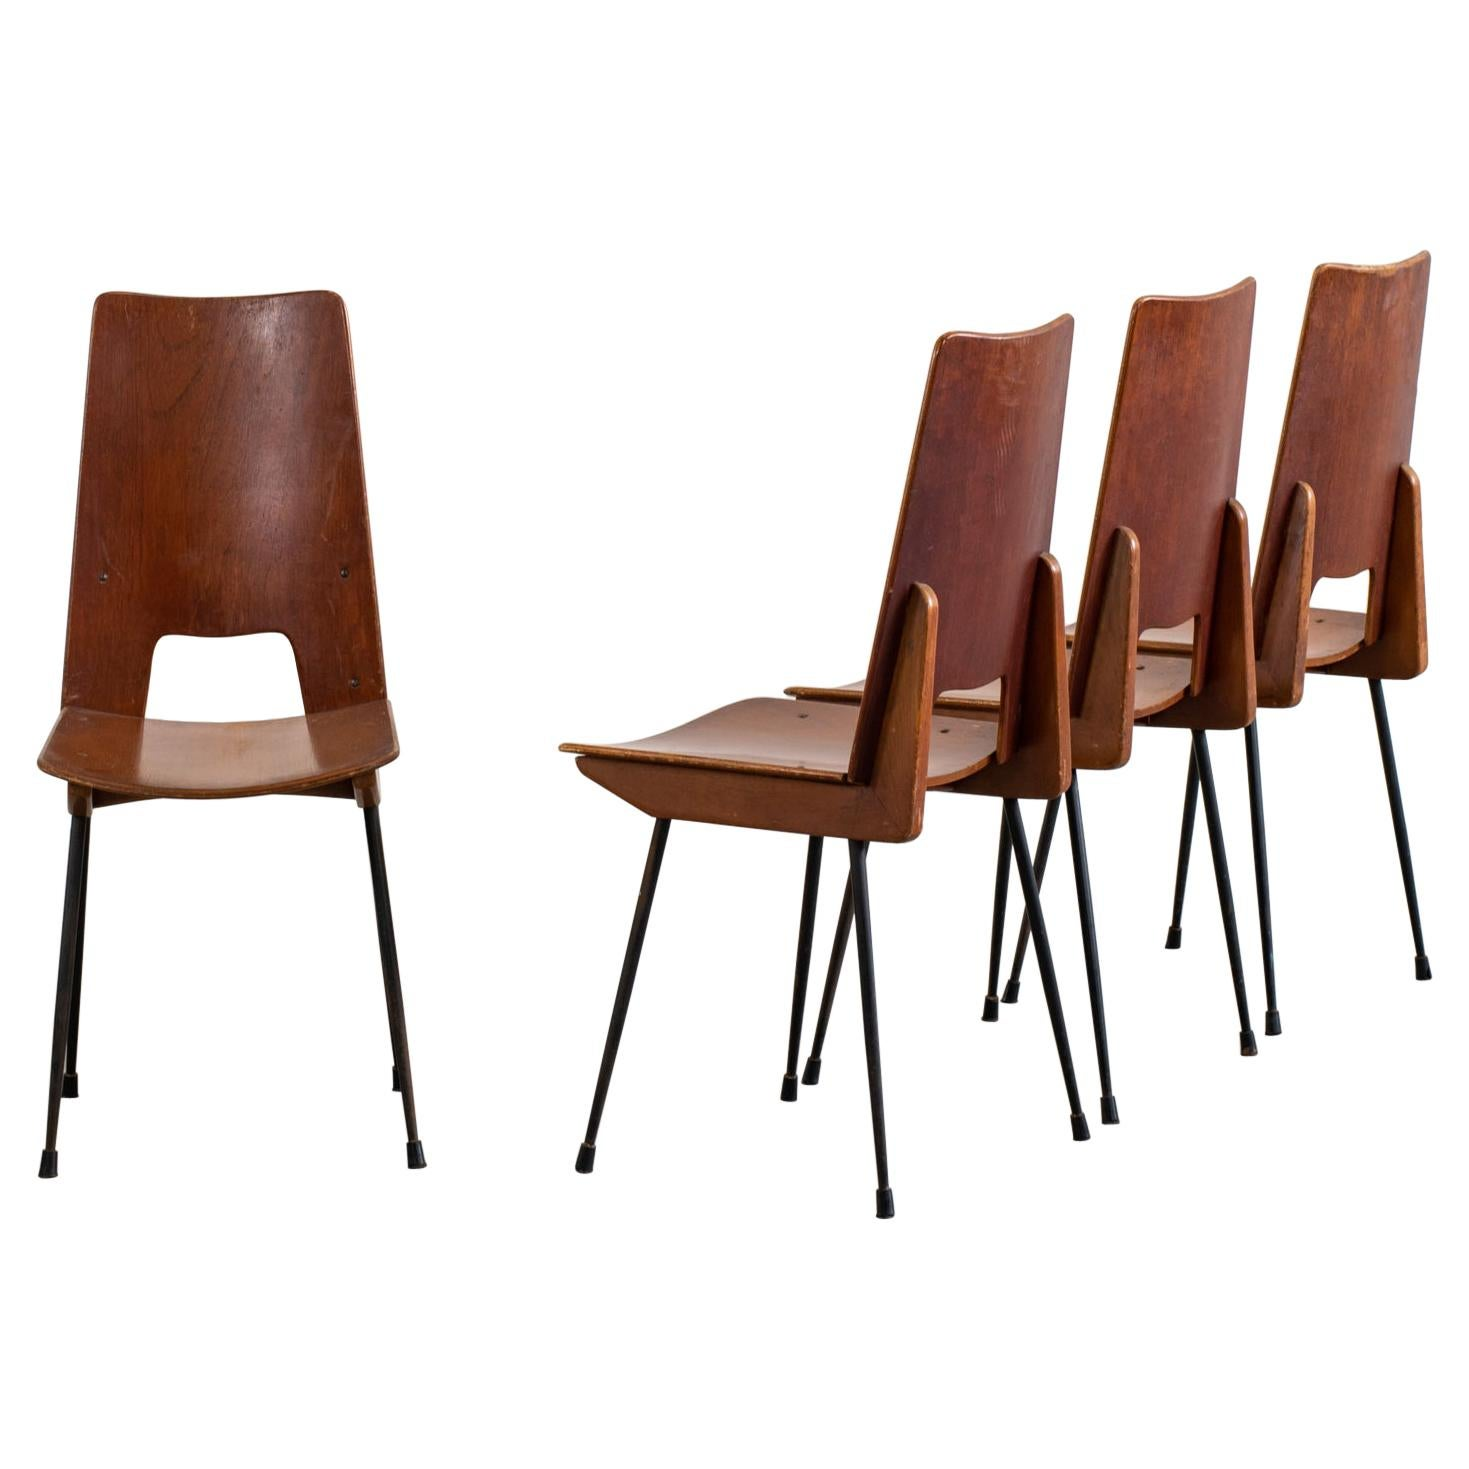 Carlo Ratti Set of Four Wooden Dining Chairs Italian Manufacture, 1950s